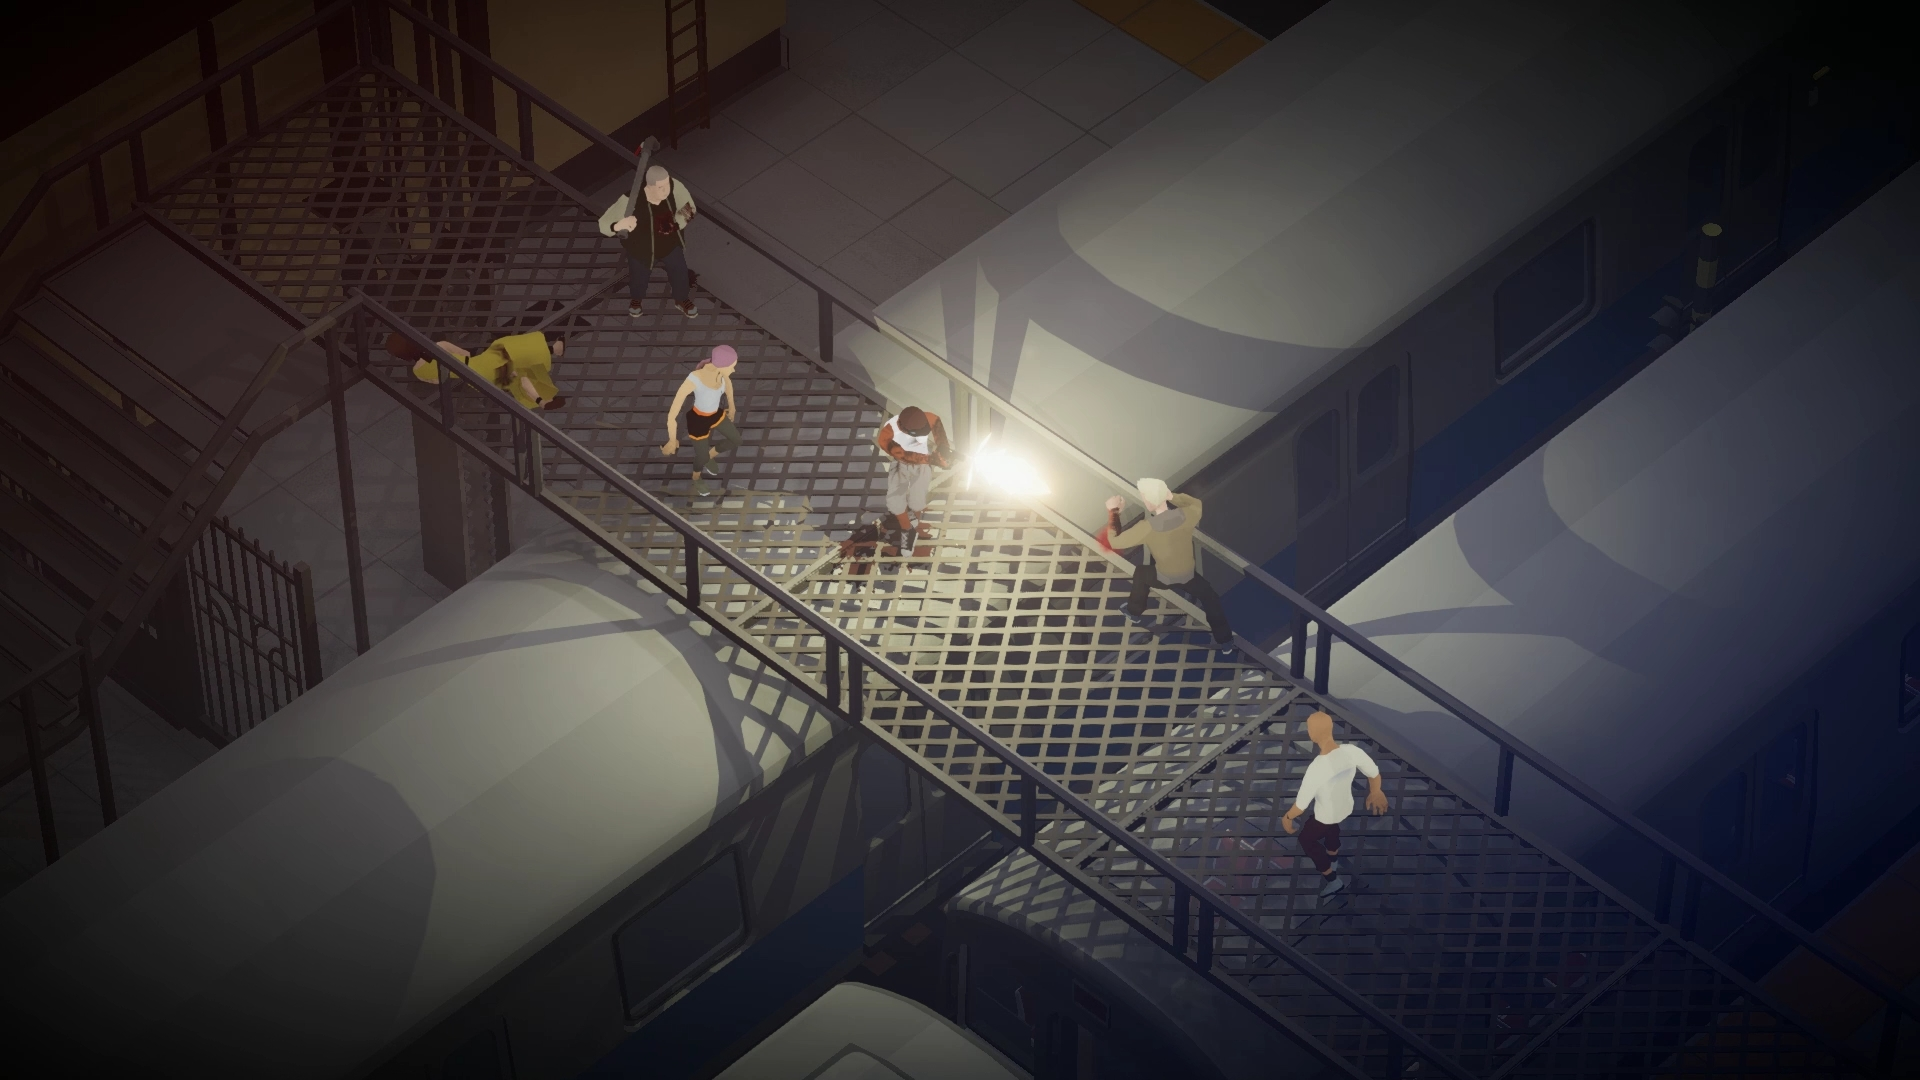 Players beat up enemies in Midnight Fight Express